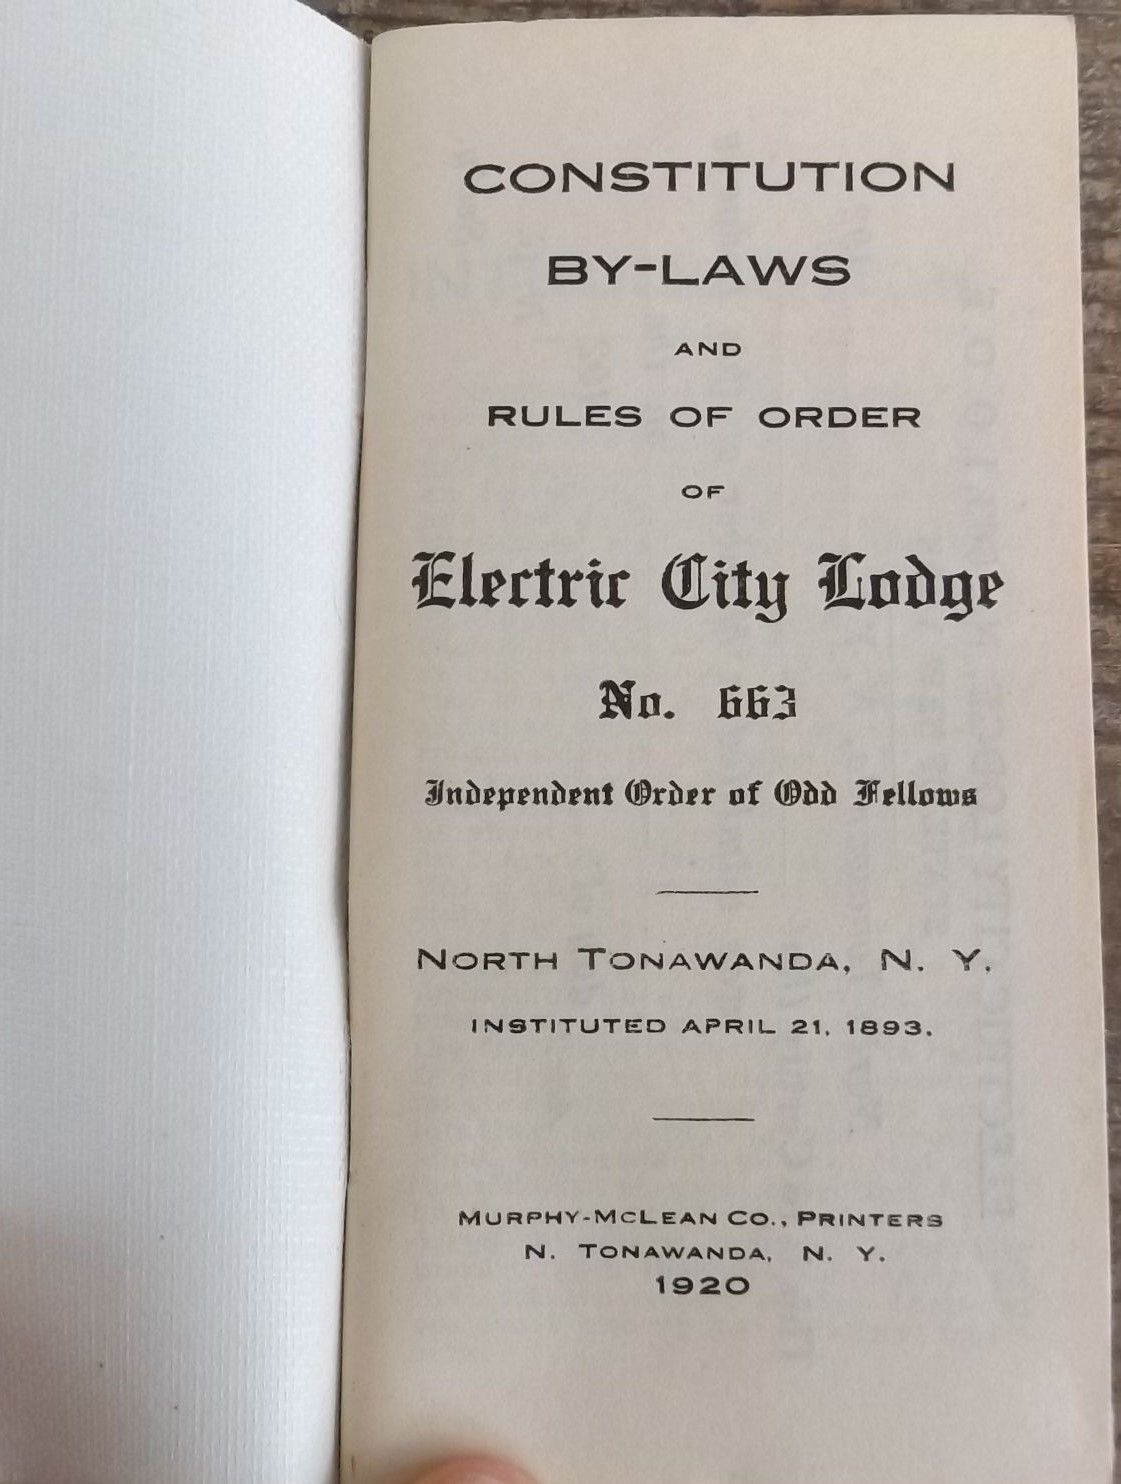 By-Laws of Electric City Lodge 663, I.O.O.F., booklet excerpts, title page (1920).jpg